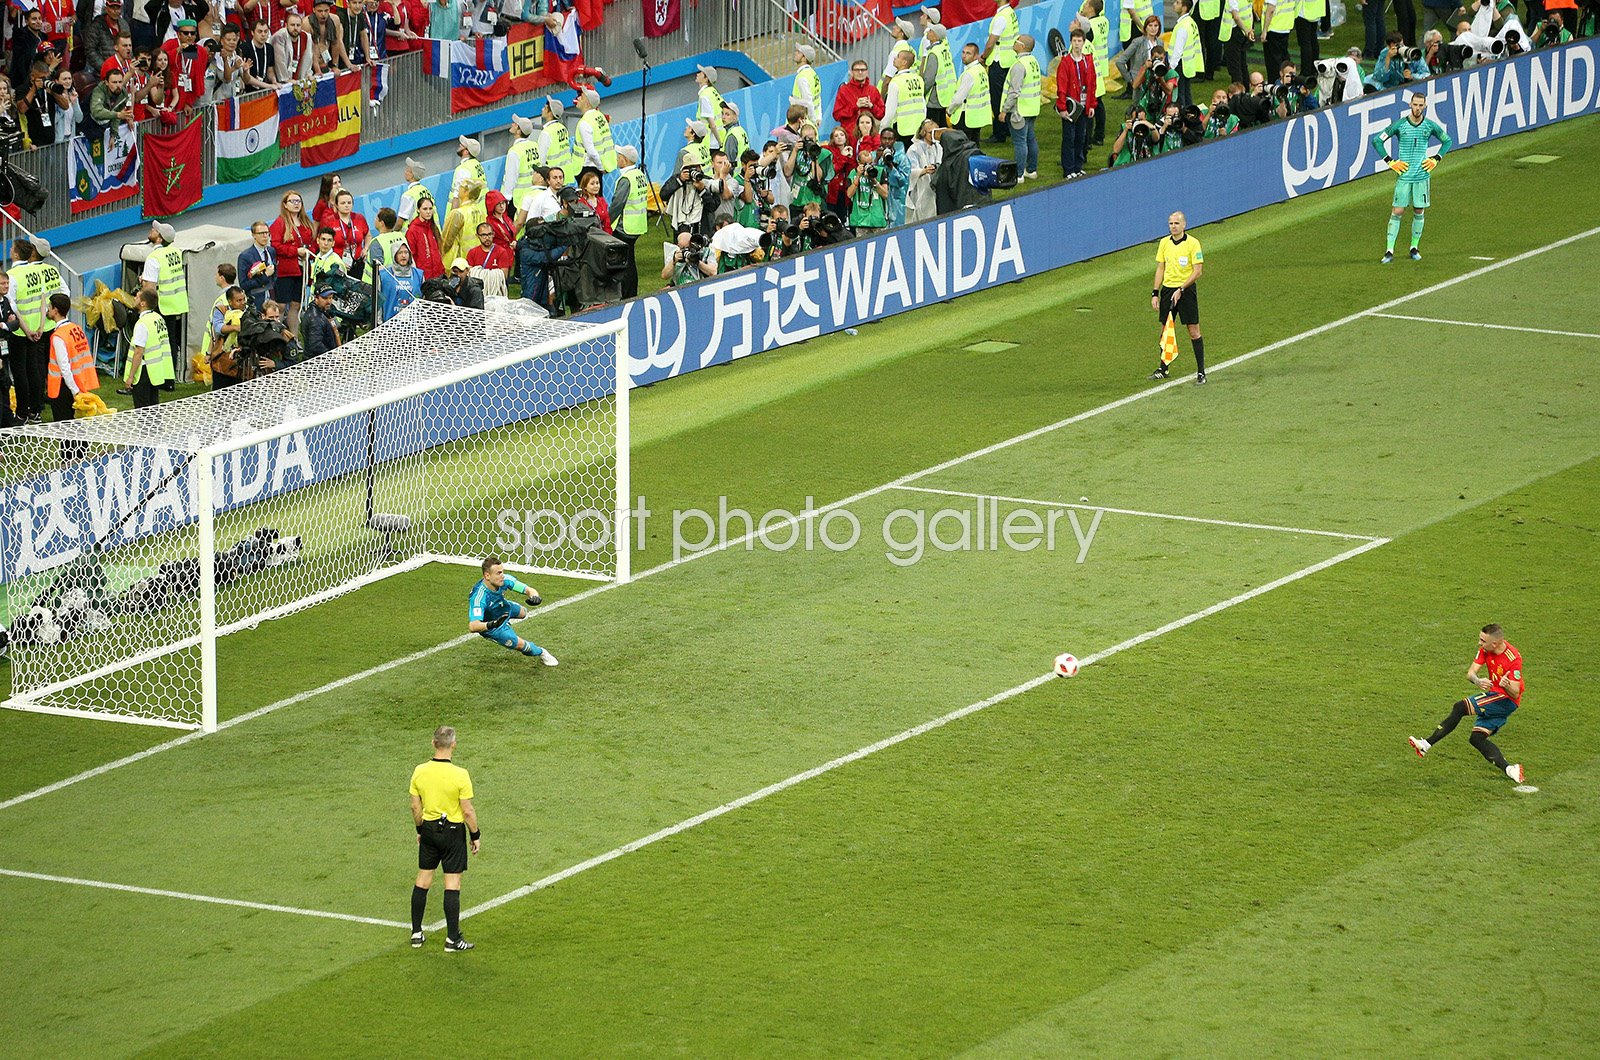 Igor Akinfeev Russia winning save v Spain Last 16 World Cup 2018